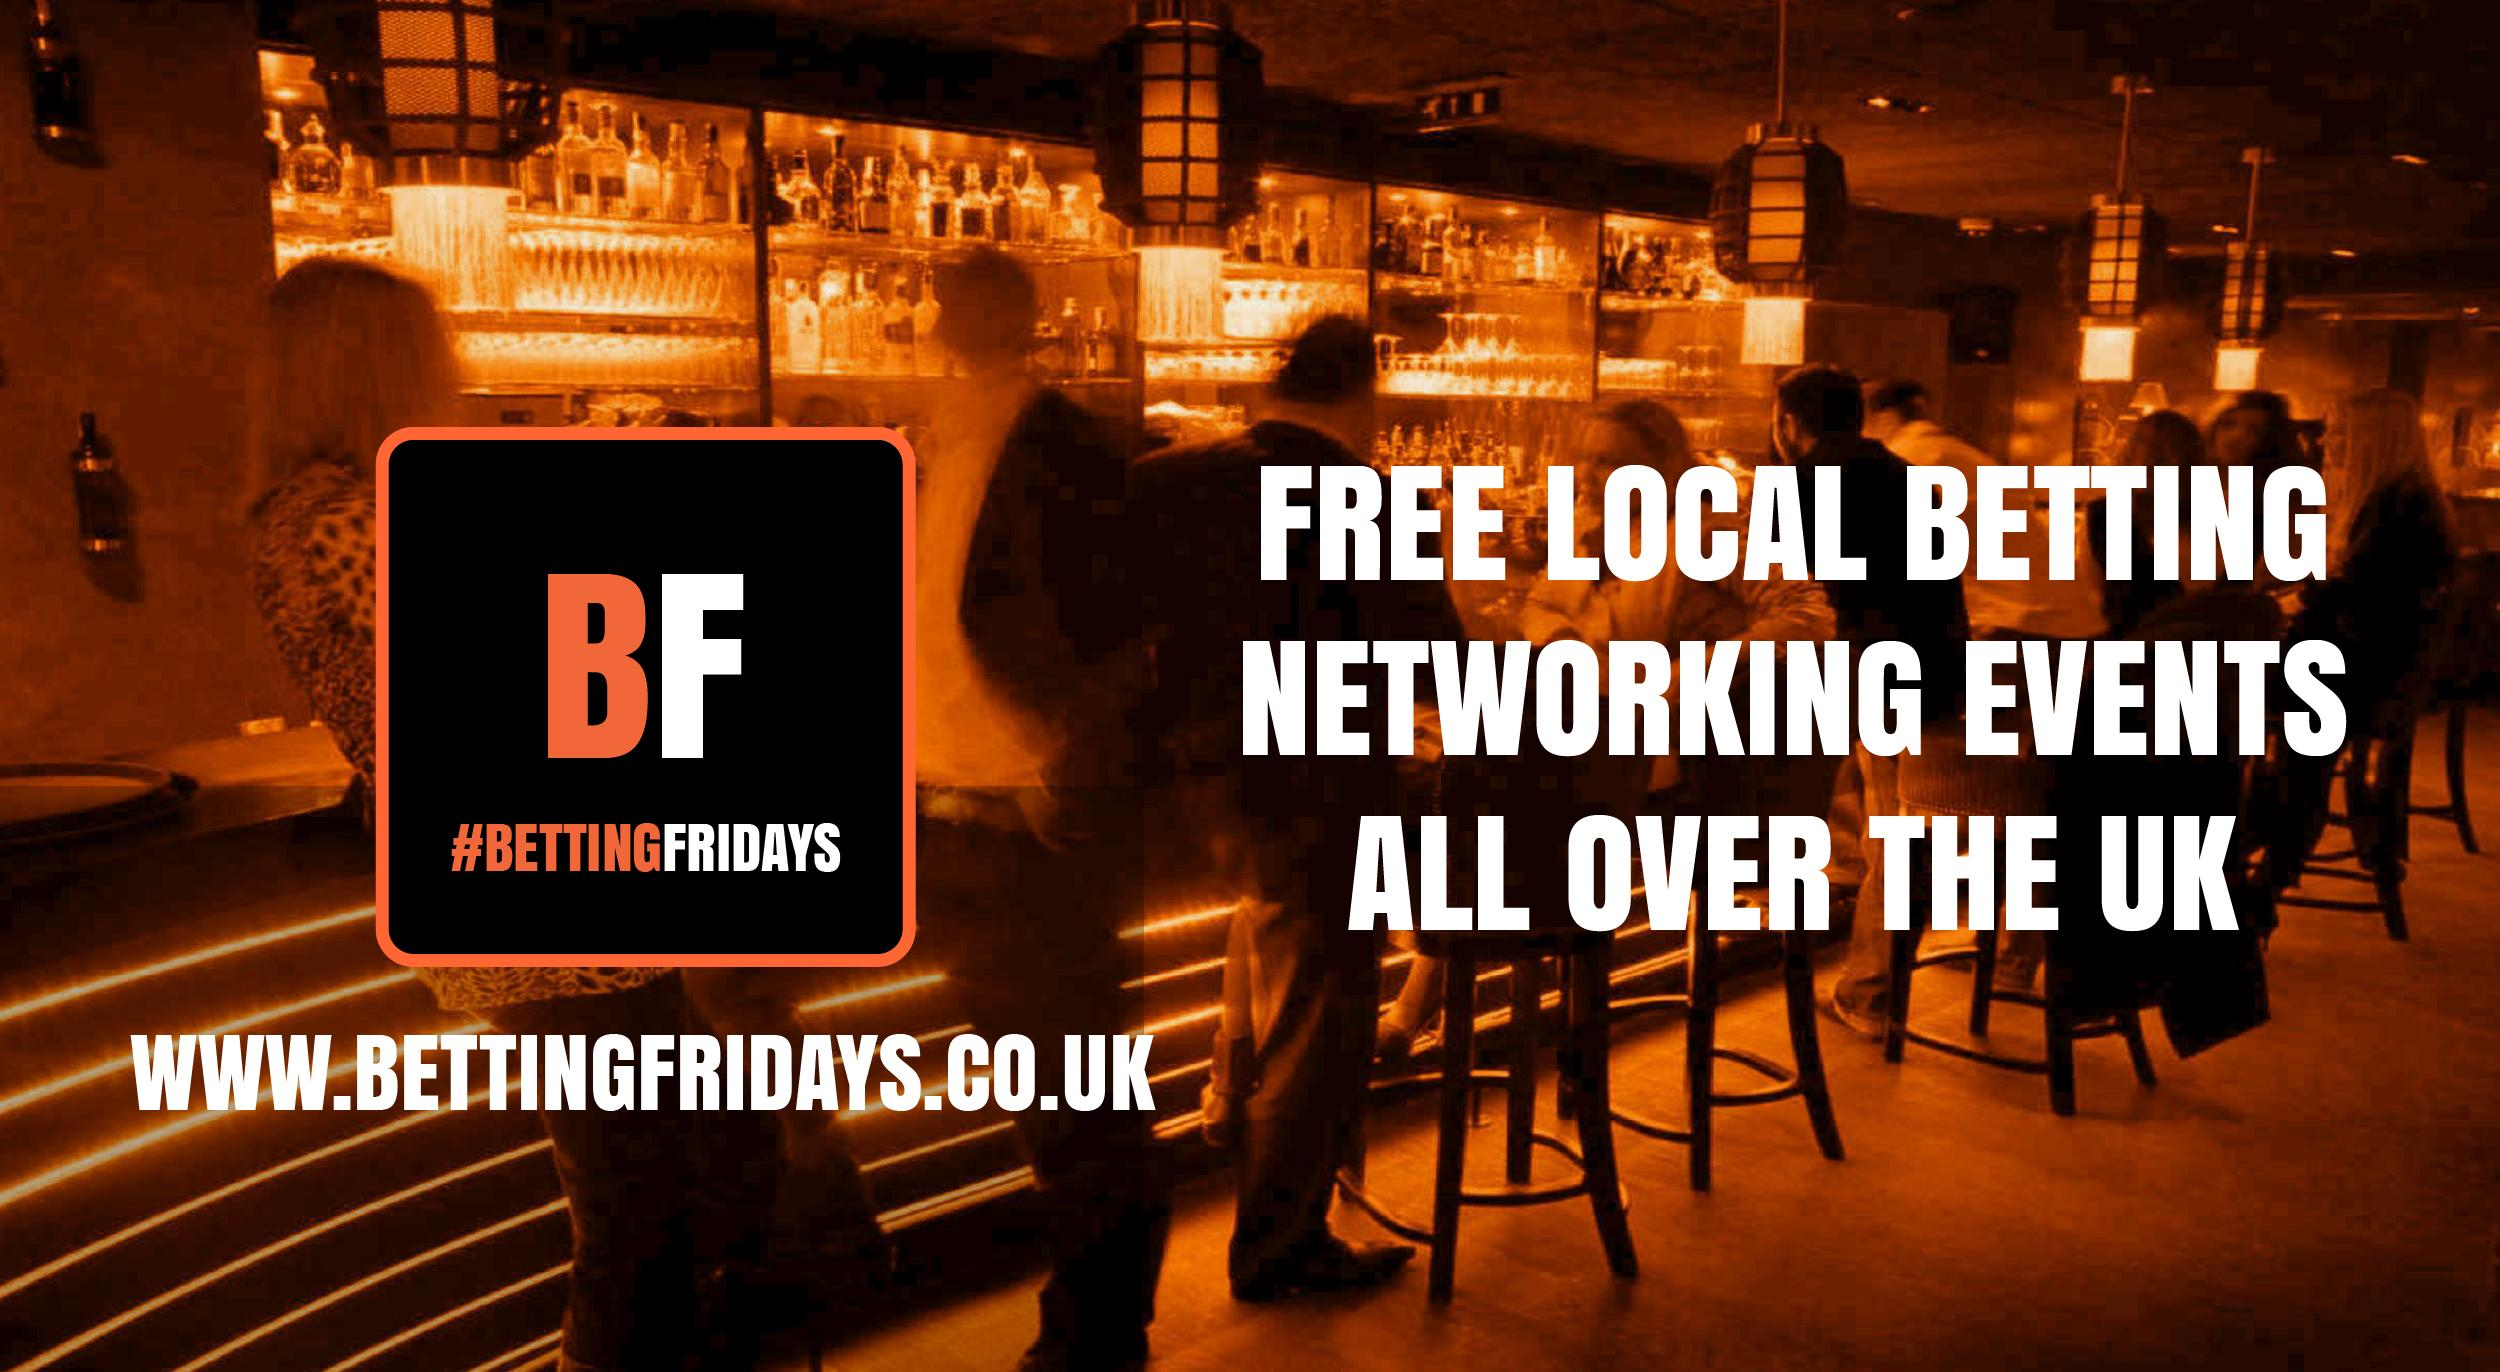 Betting Fridays! Free betting networking event in Rowley Regis